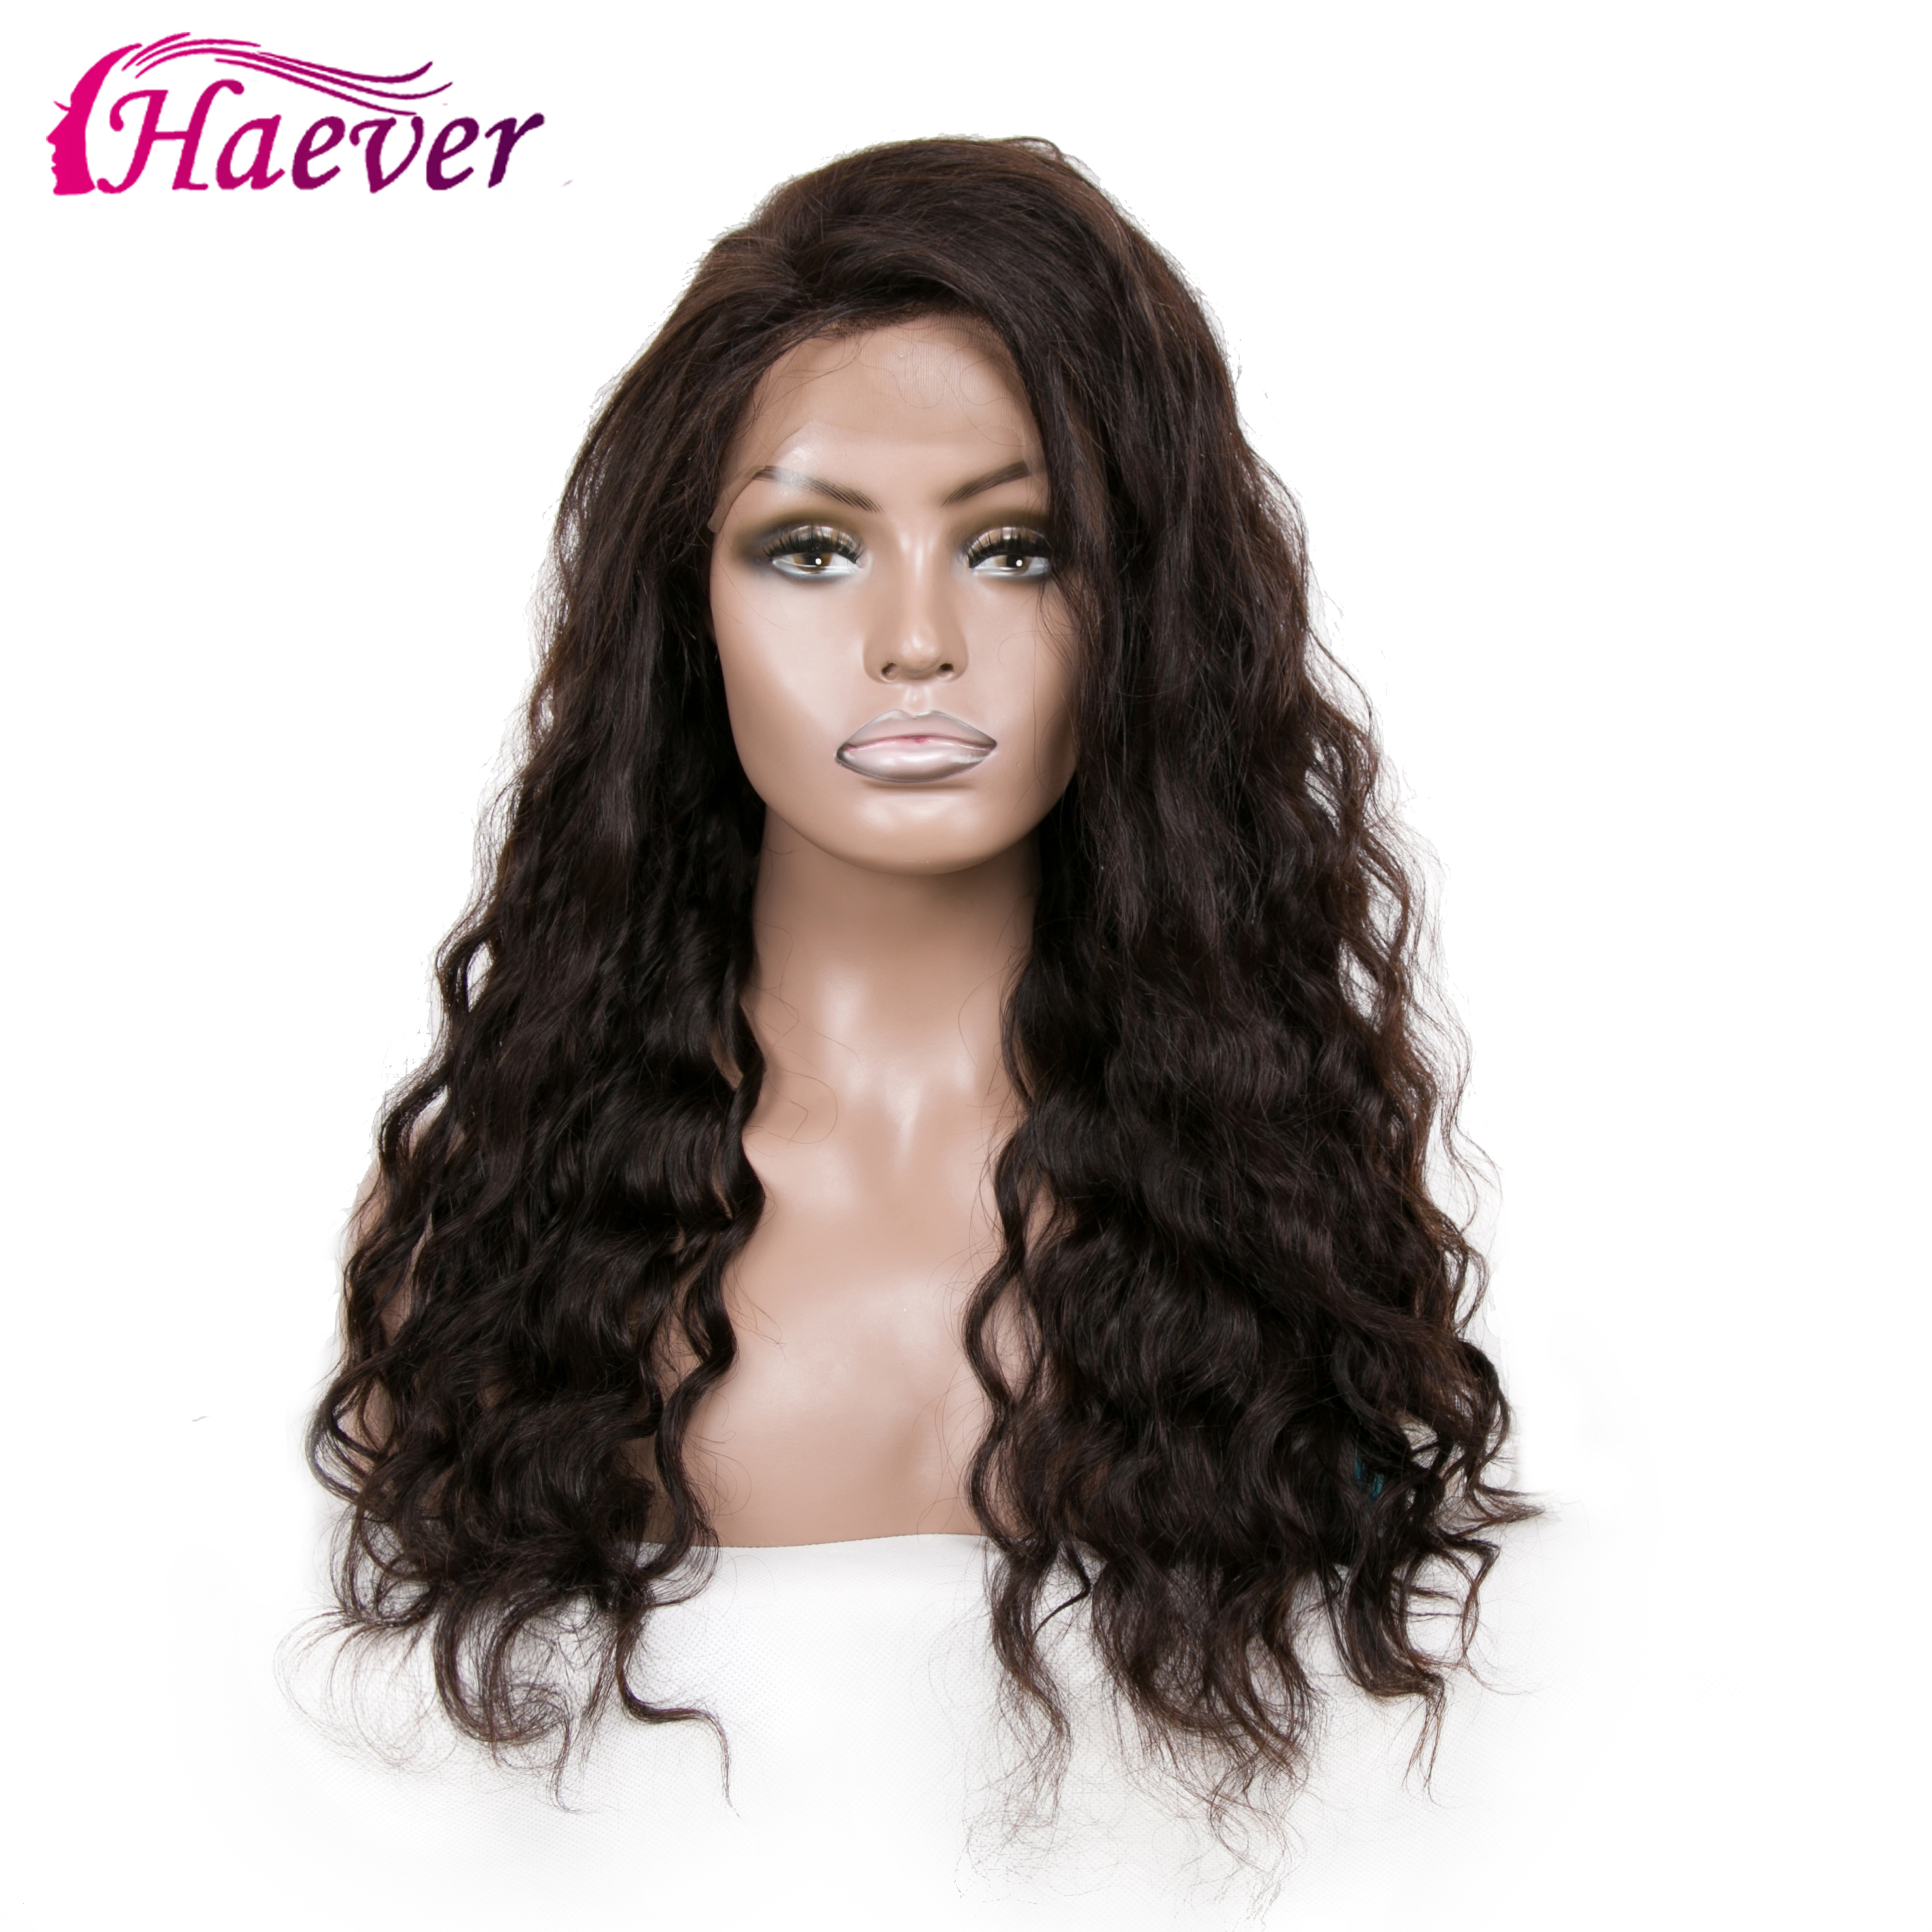 Haever 13x4 Water Wave Human Hair Lace Front Wigs New Hair Wigs 180 With Baby Hair Peruvian Wig Pre Plucked 150% Remy Hair Wig